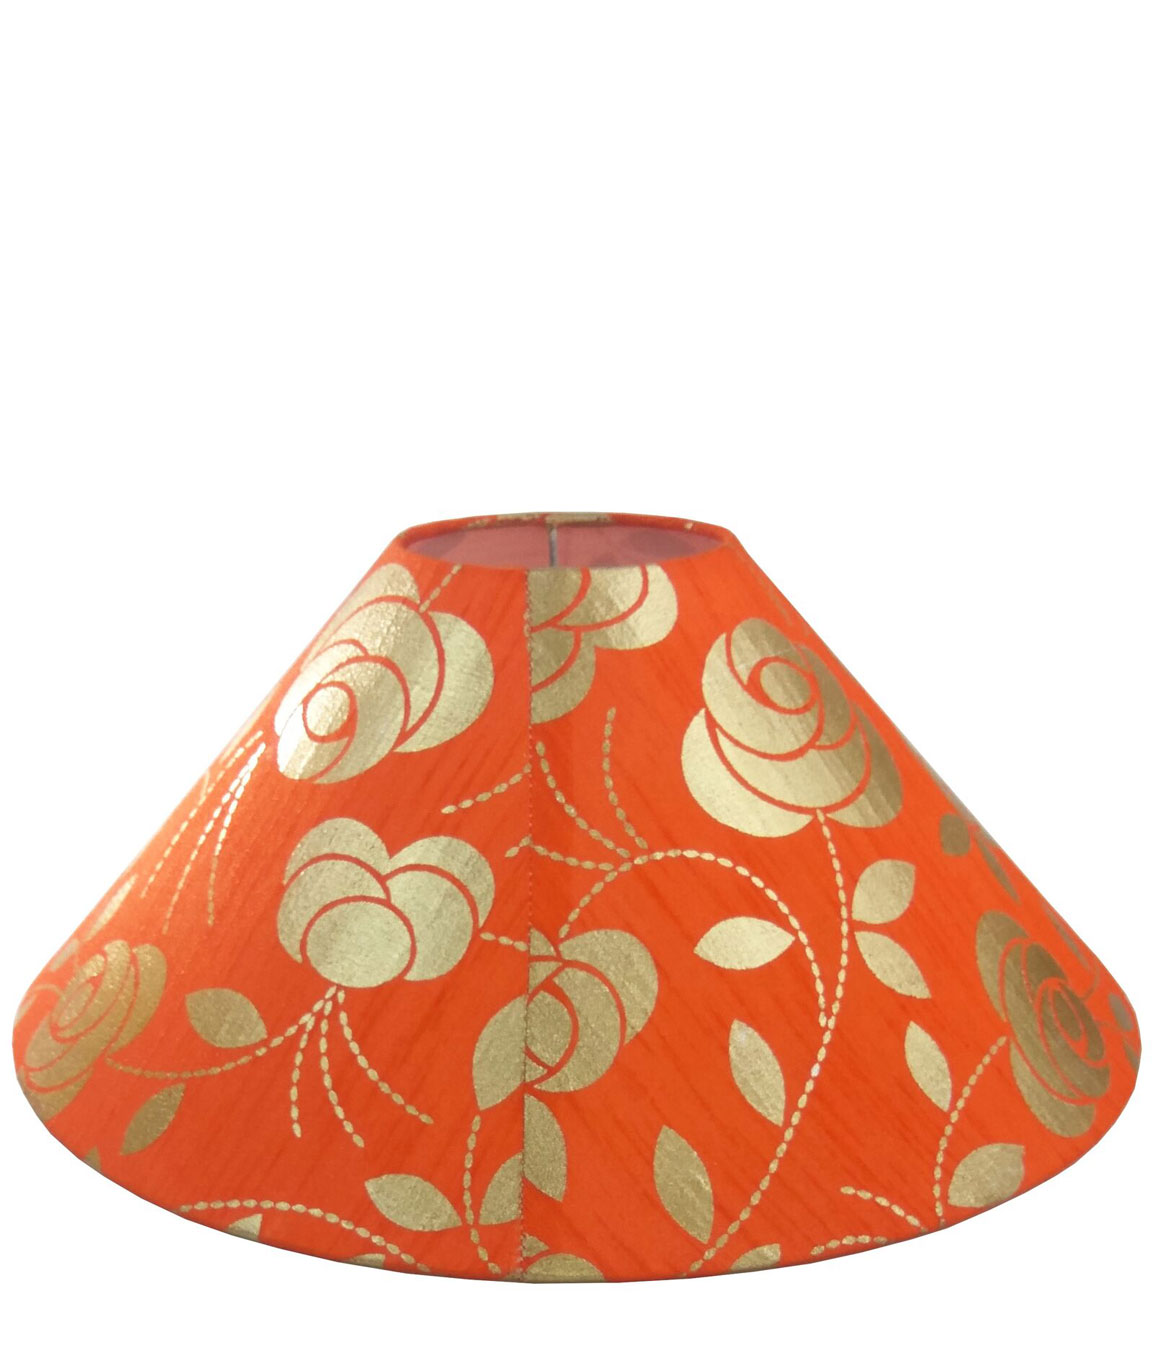 RDC 13 Inches Round Orange with Golden Floral Design Lamp Shade for Table Lamp